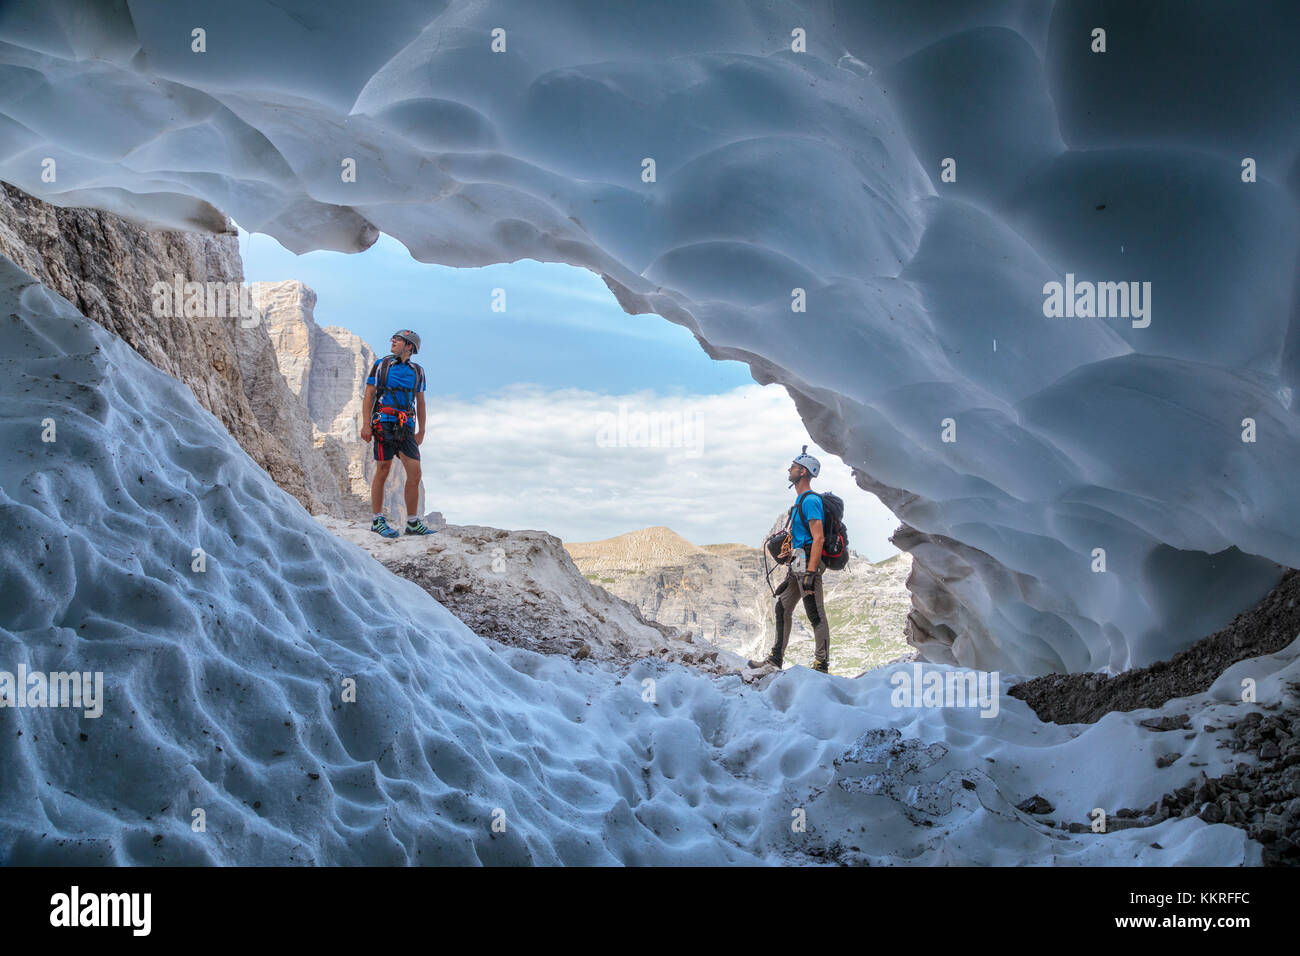 Italy, South Tyrol, Hochpustertal, Sexten. Snow cave in the summer season along the Alpinisteig / Strada degli alpini - Stock Image